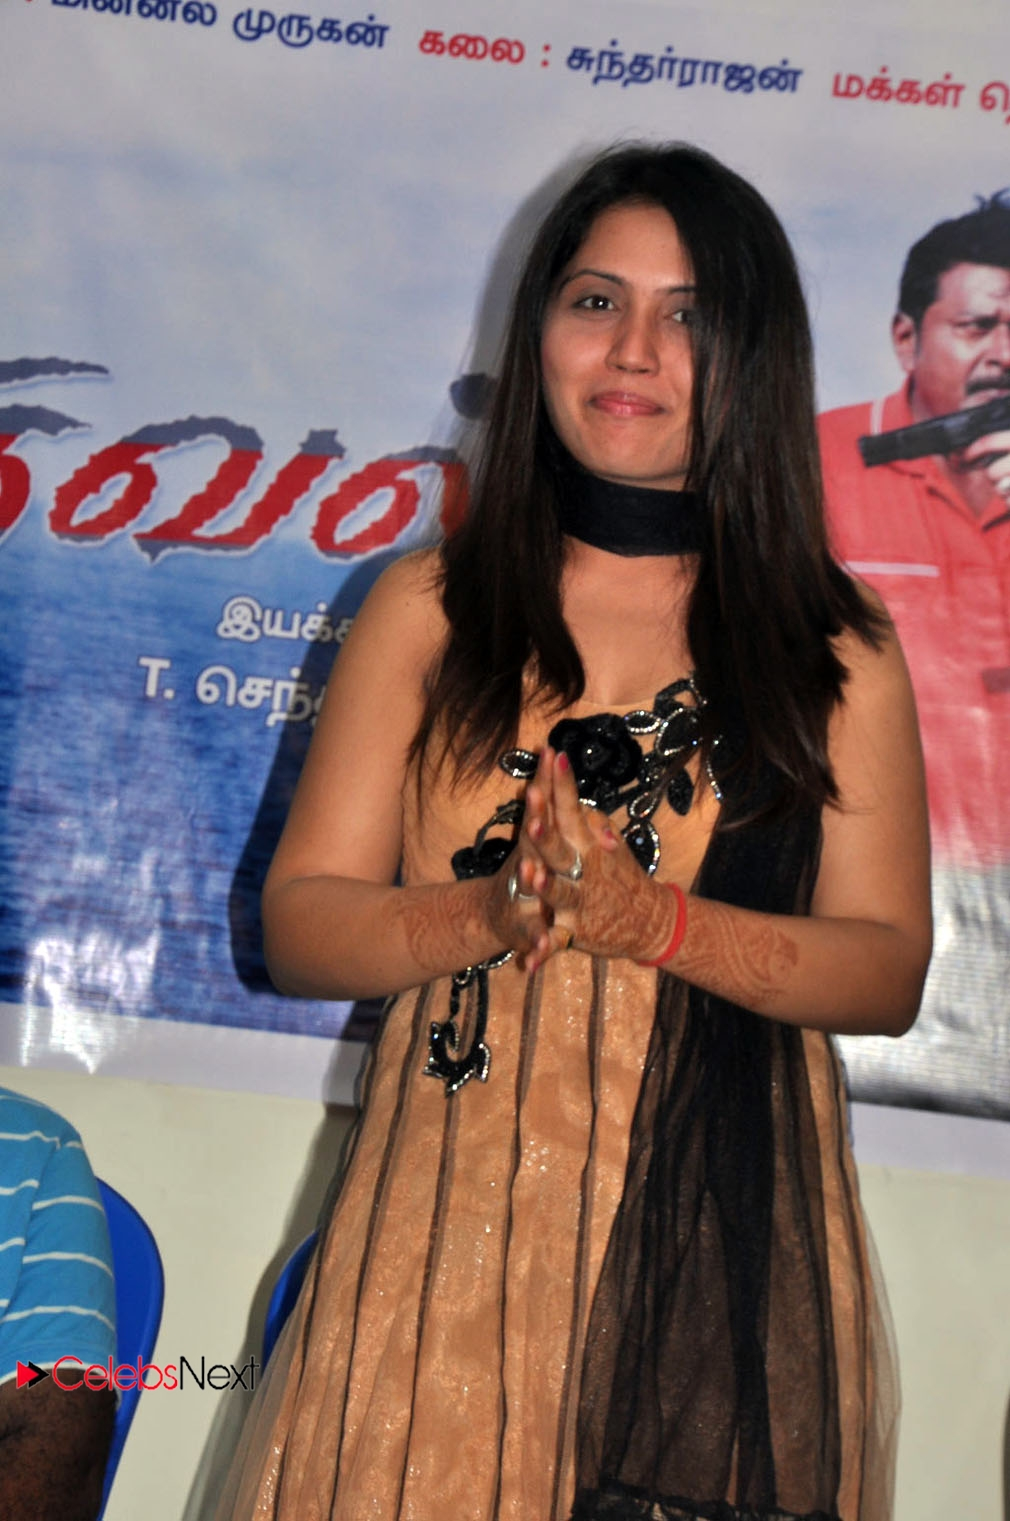 ooduruval press meet actors